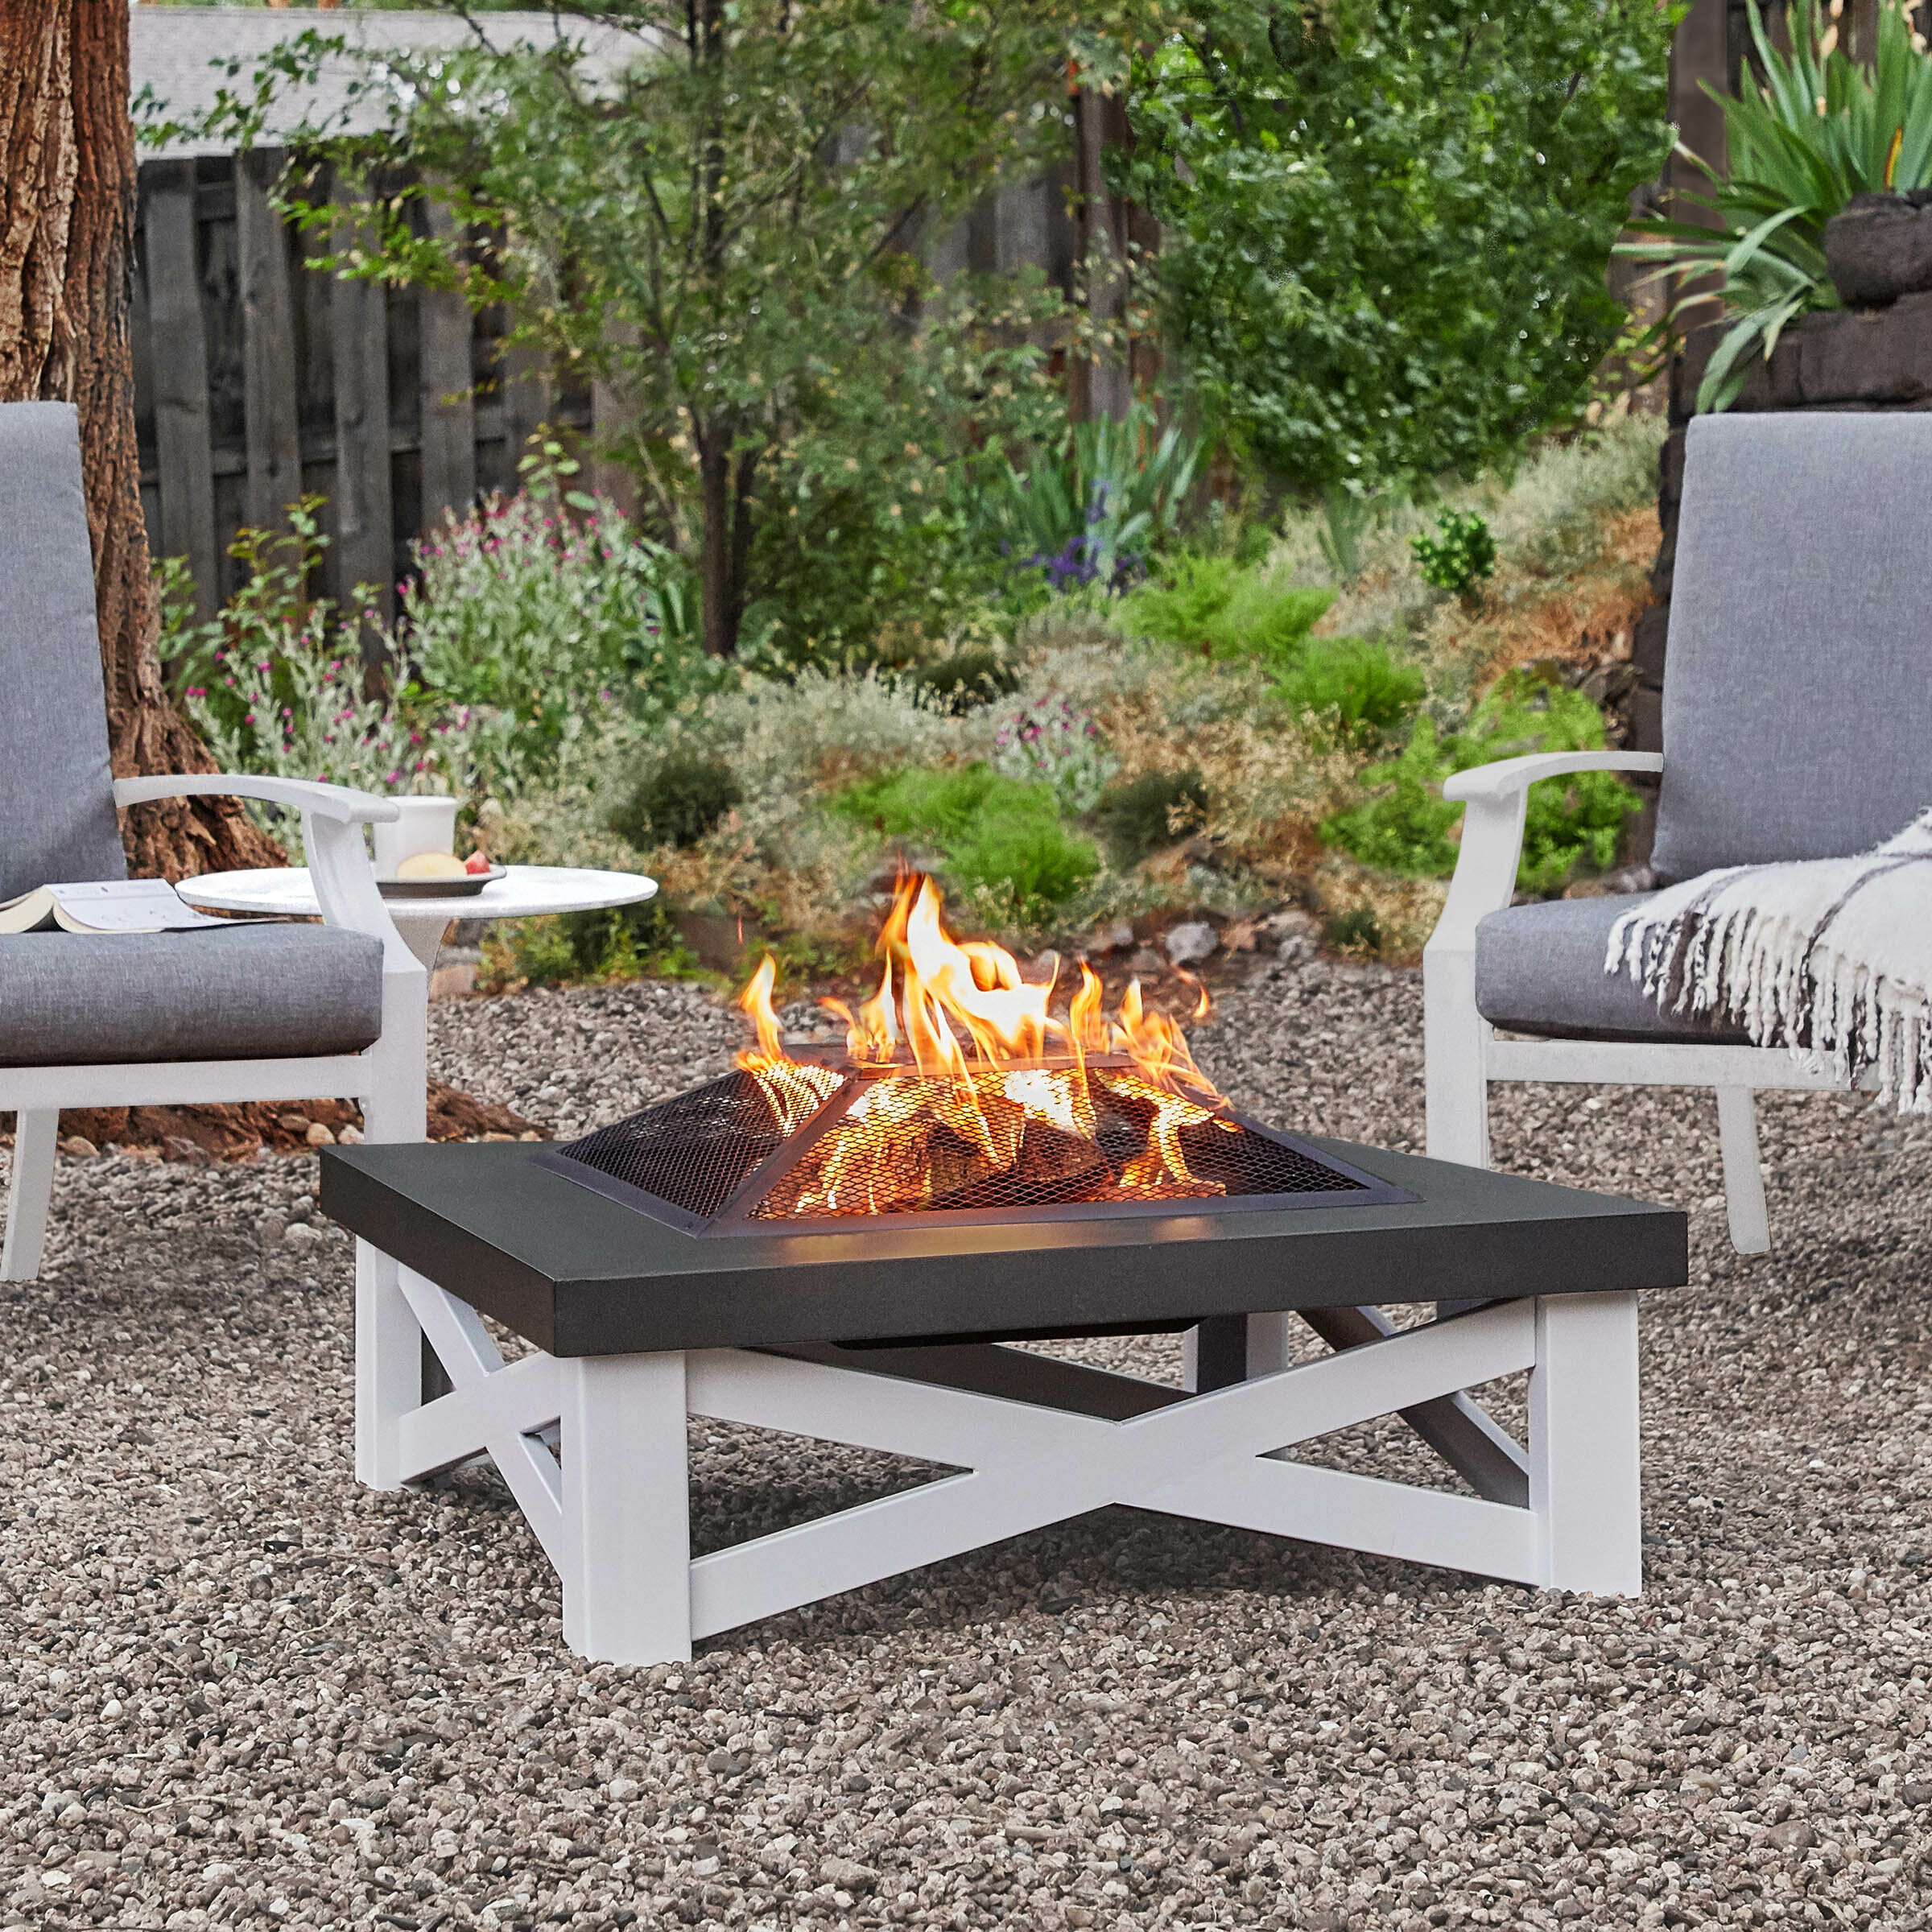 Real Flame Austin Steel Wood Burning Fire Pit Reviews Wayfair